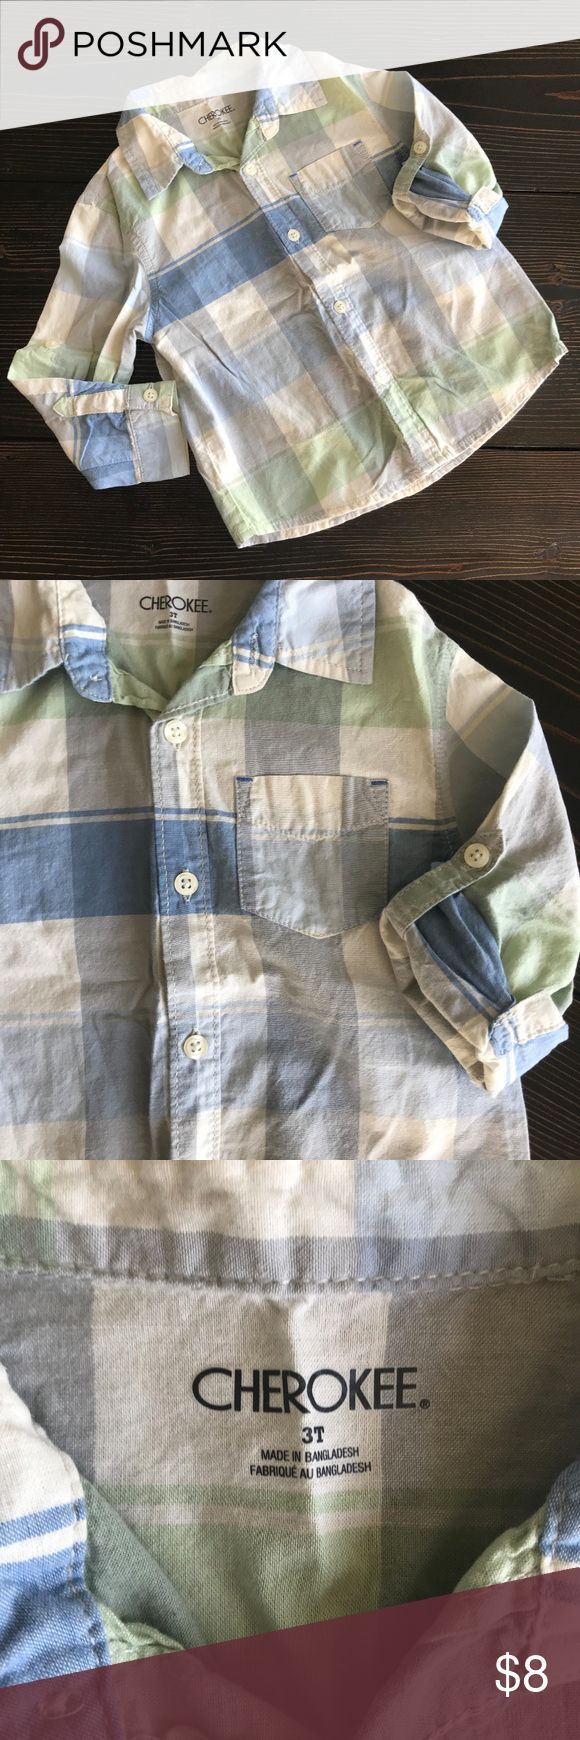 Cherokee Boys Blue and Green Plaid Button Down Soft and stylish plaid button down in pastel blues and greens for your little boy! They have the option to roll the sleeves with a button tab to keep them in place, or wear them down. 100% cotton, machine wash warm, tumble dry low, warm iron if needed. This is a size 3T from Cherokee brand at Target. Cherokee Shirts & Tops Button Down Shirts